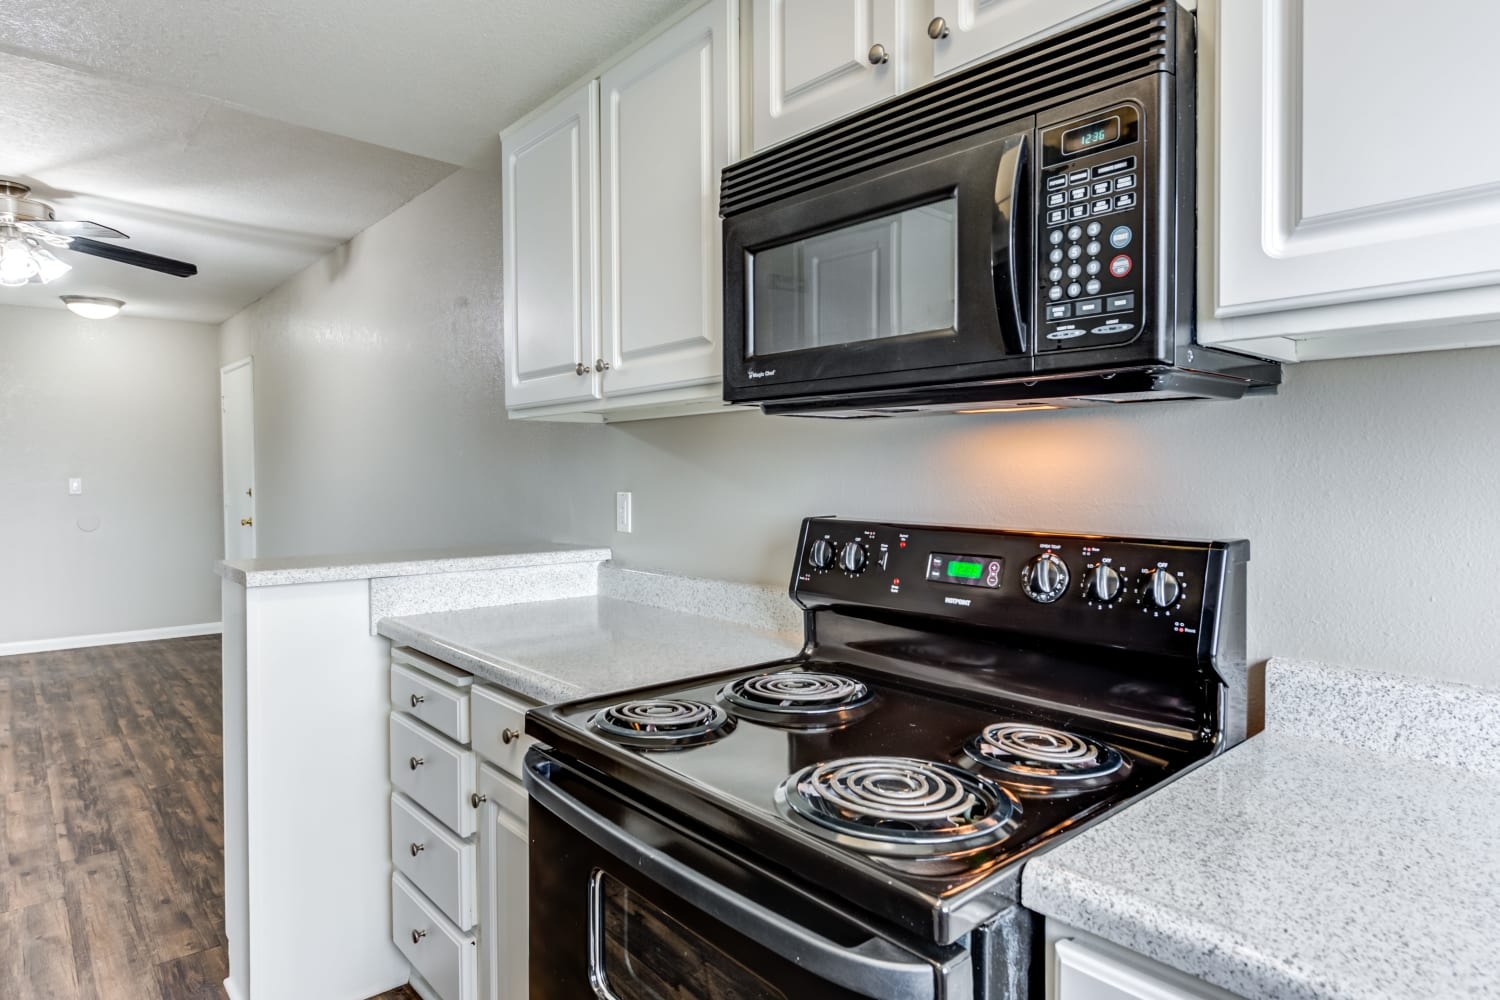 Kitchen at Apartments in Glendale, California